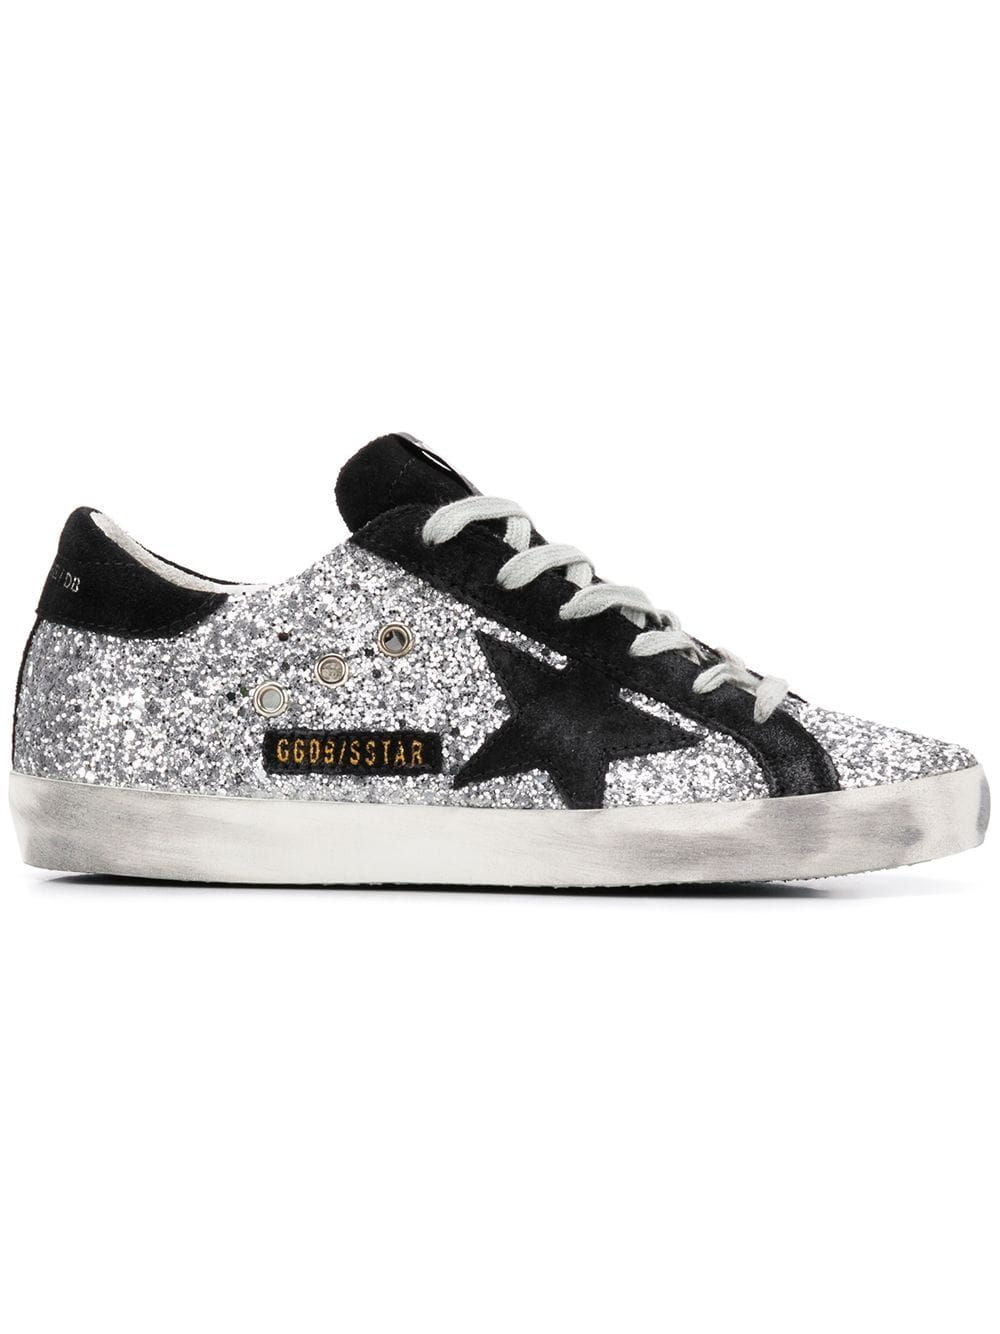 bb3b68777e Golden Goose Superstar Sneakers in 2019 | Products | Sneakers ...